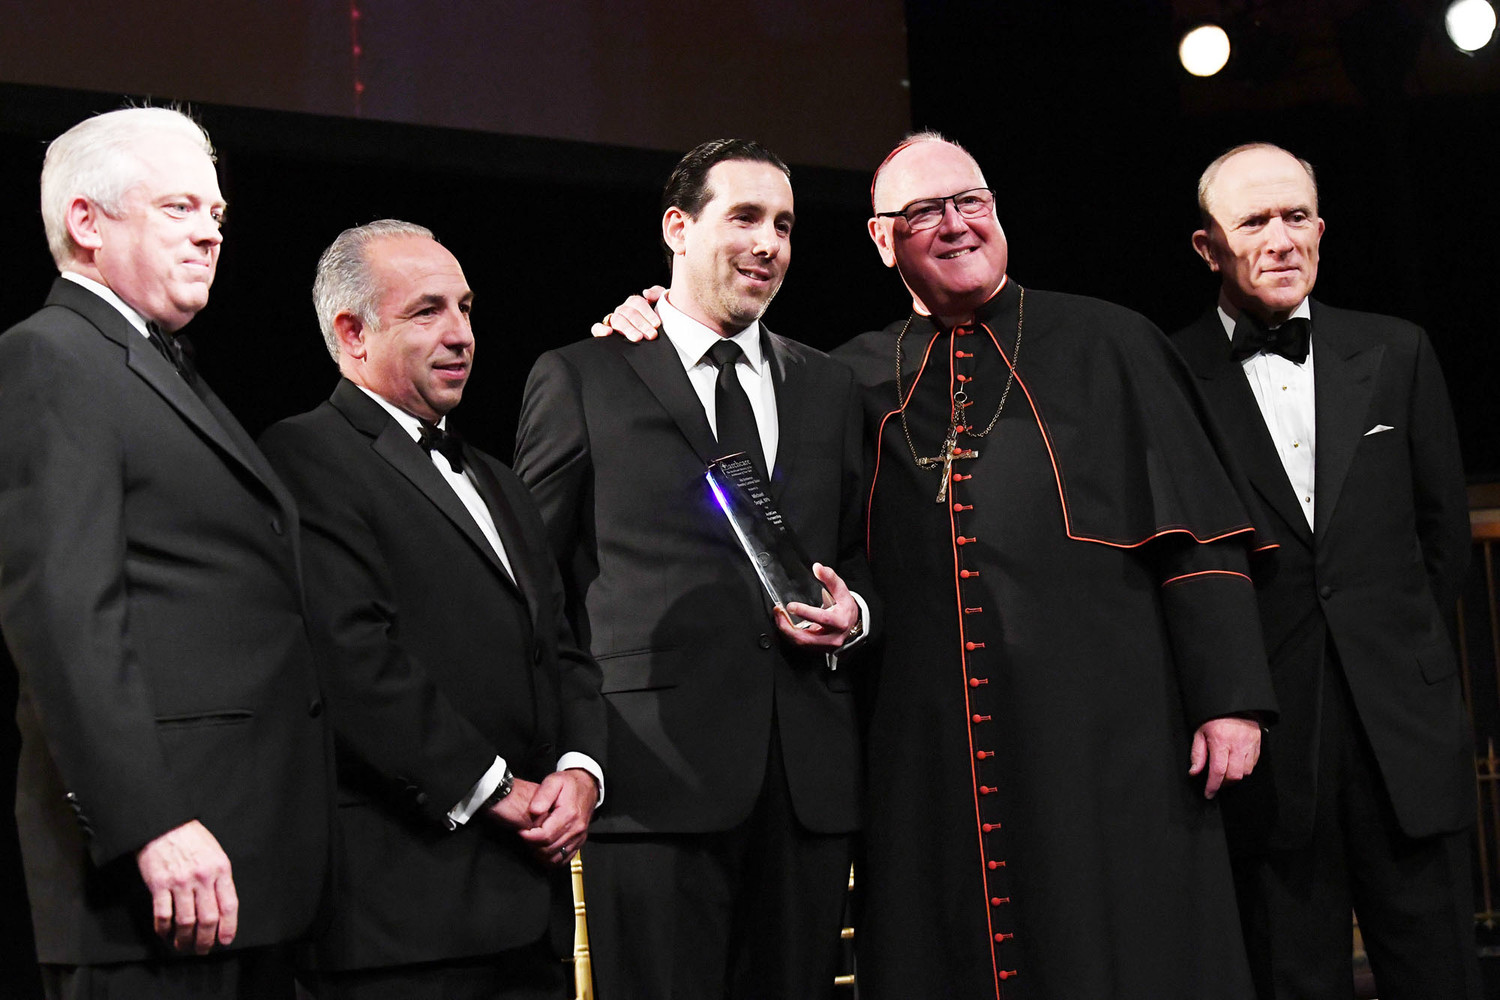 Michael Segal, CEO of PharmScript, center, receives the ArchCare Partnership Award at the ArchCare Gala at Gotham Hall in Manhattan Nov. 1. Standing, from left, are Scott LaRue, president and CEO of ArchCare, Michael Rosenblum, vice president of client management for PharmScript; Segal; Cardinal Dolan; and Francis J. Serbaroli, chairman of ArchCare's board of trustees.